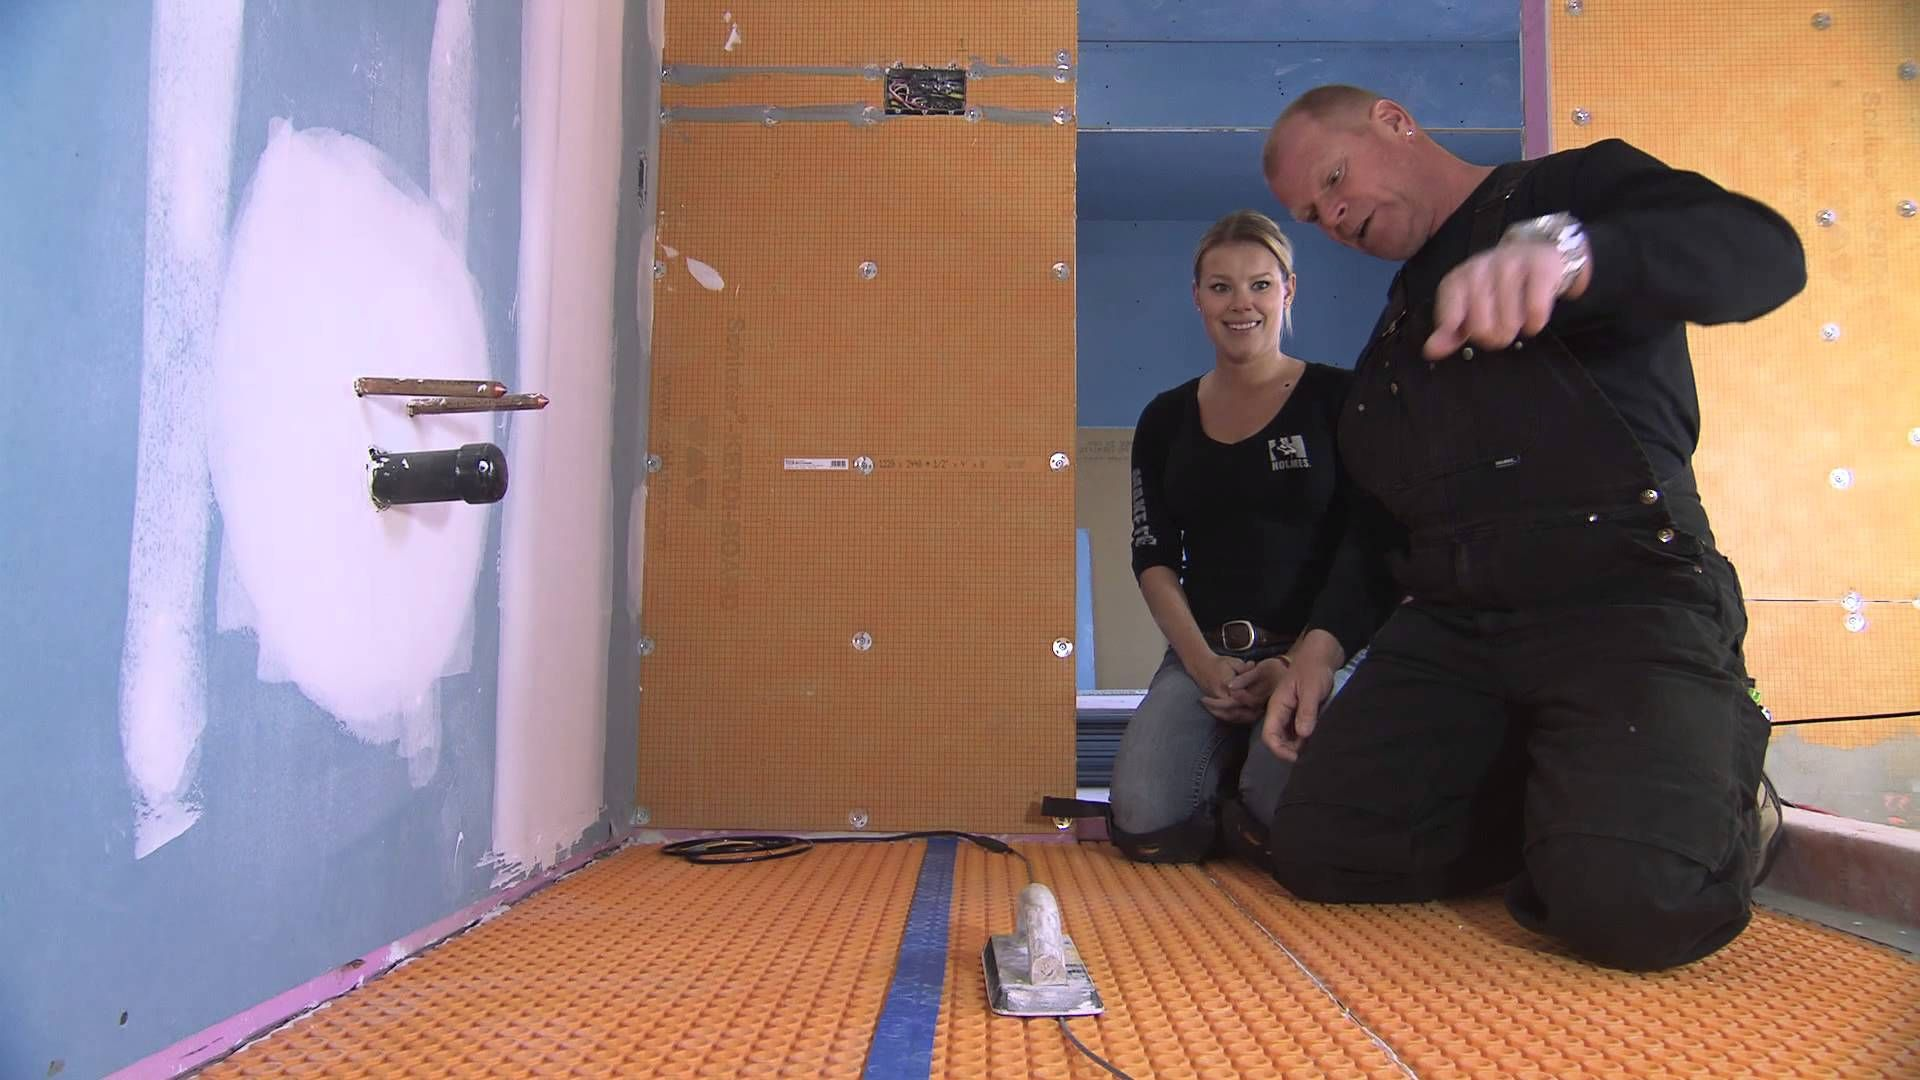 Mike holmes on schluter ditra heat for the home mike holmes ditra heat is the first electric floor warming system that combines uncoupling in a single layer with the heating cables for a warm tile floor that is not dailygadgetfo Gallery